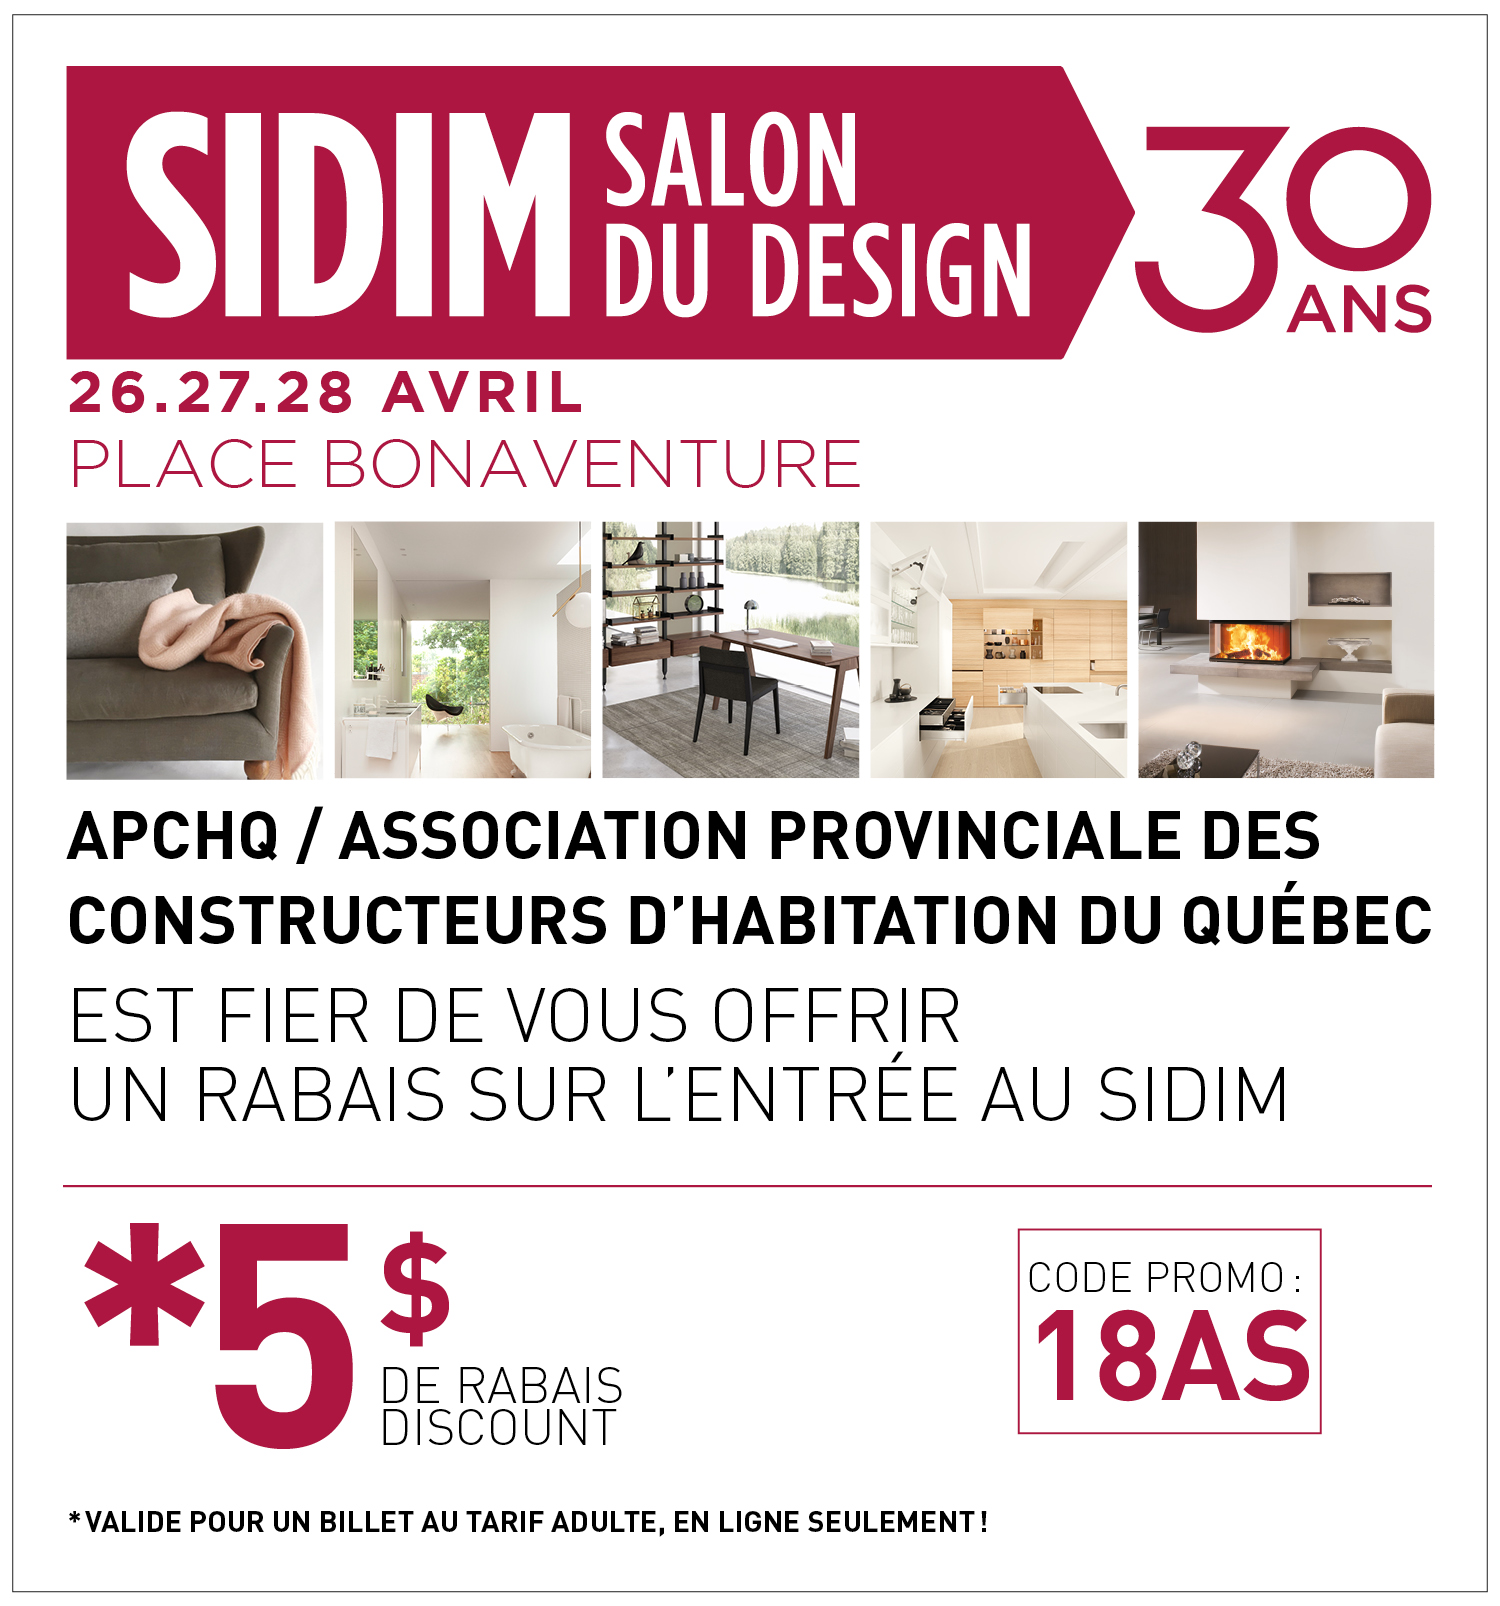 Le Salon International Du Design De Montr Al F Te Son 30e Anniversaire